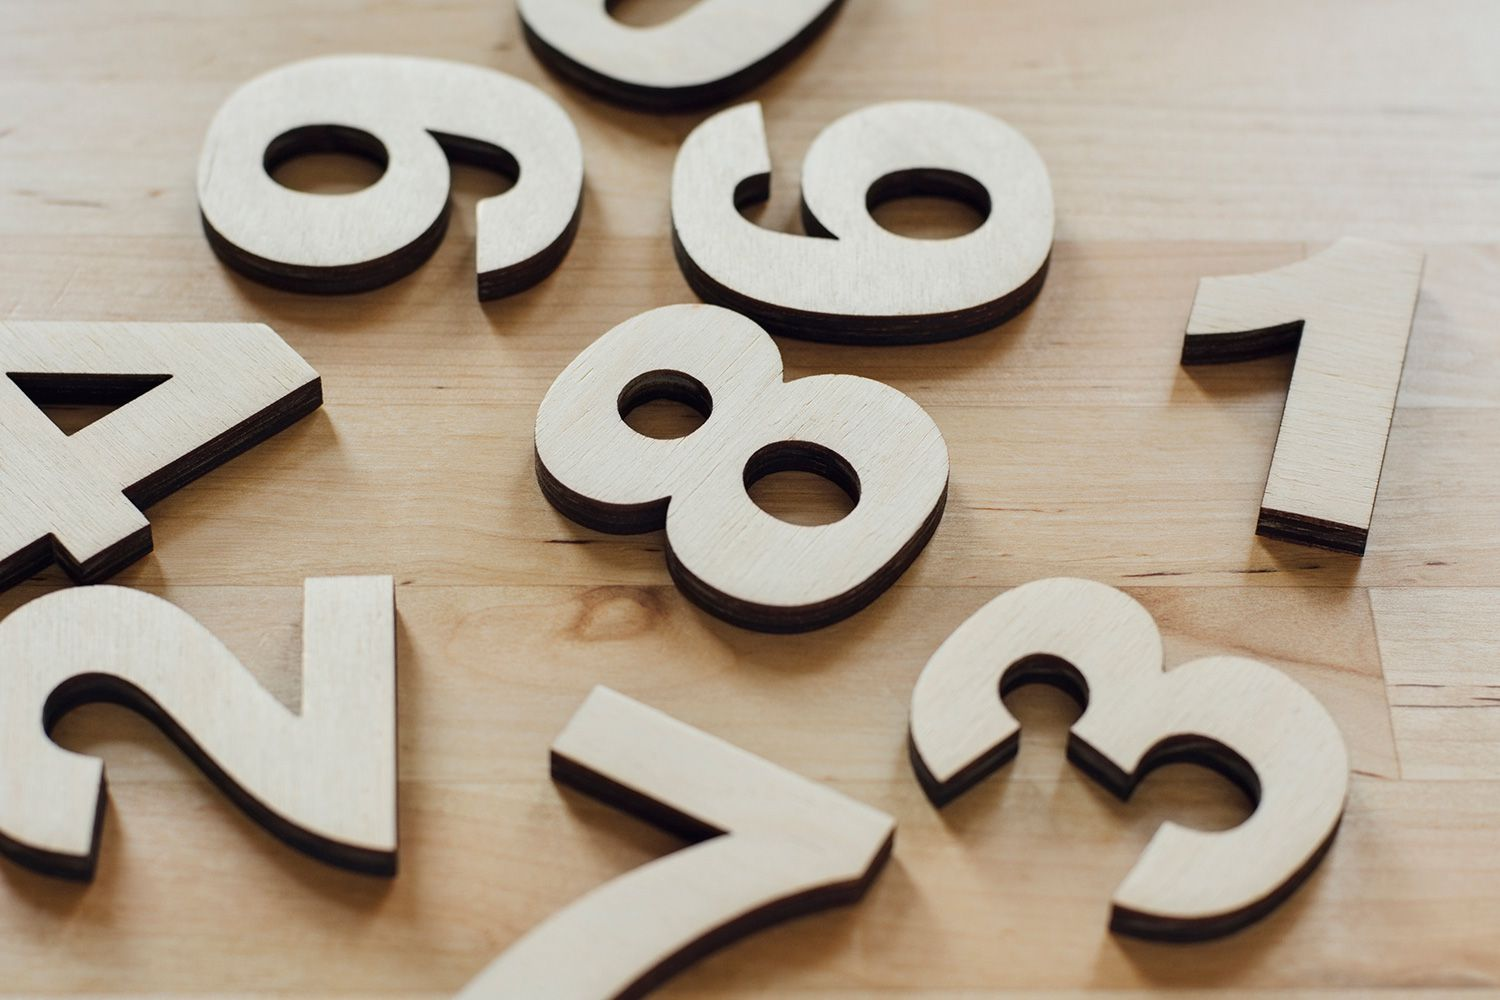 Changing From Base 10 To Base 2 In Mathematics